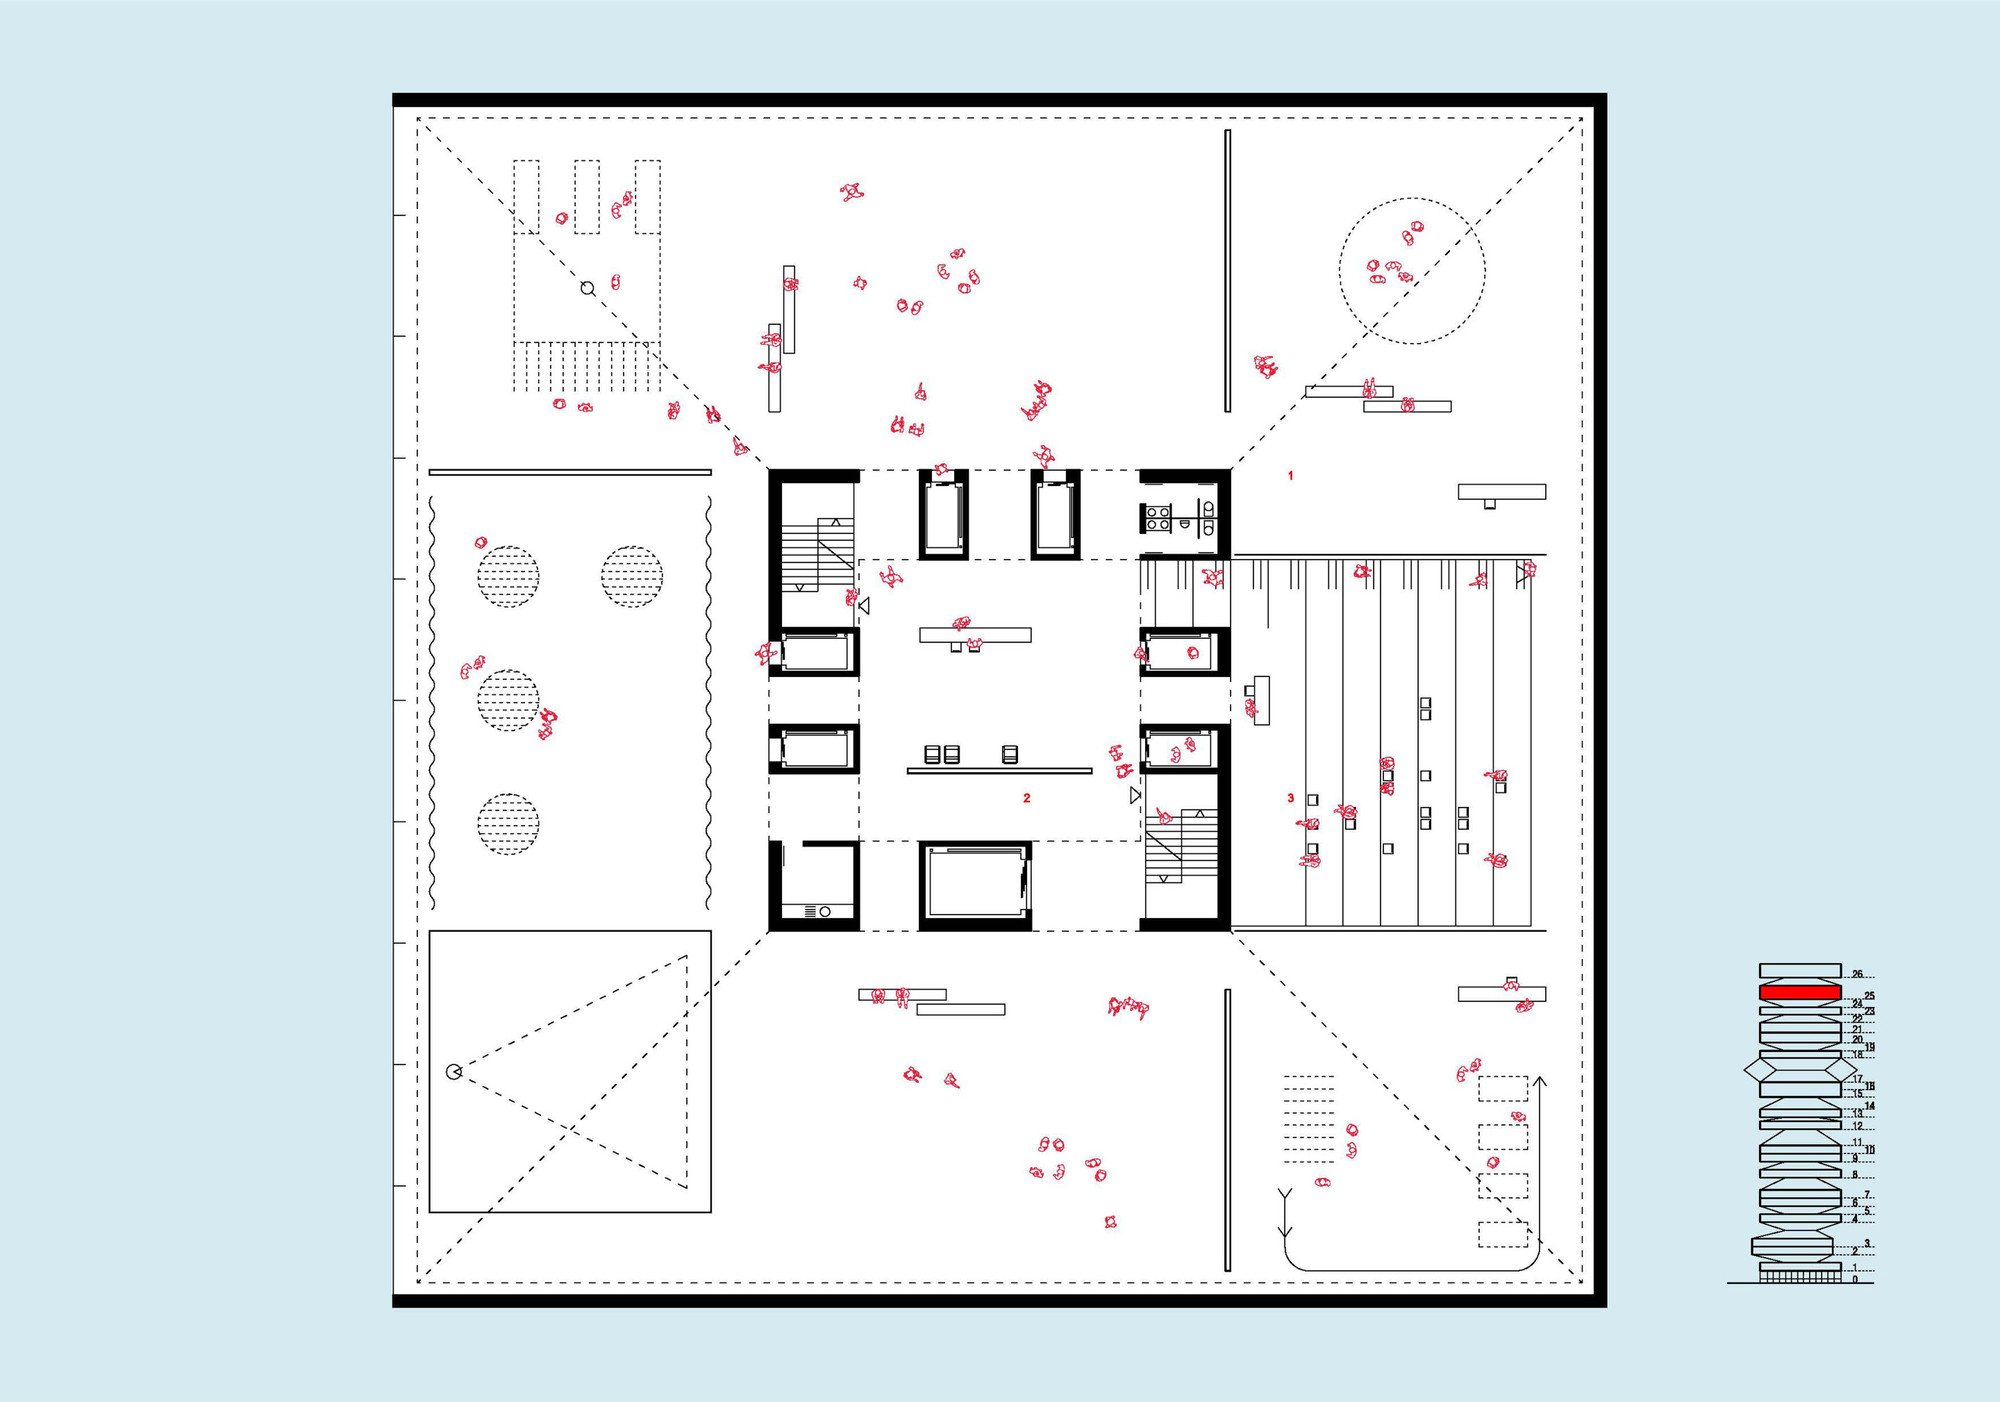 Exhibition Floor Plan D : Gallery of taichung city cultural center competition entry